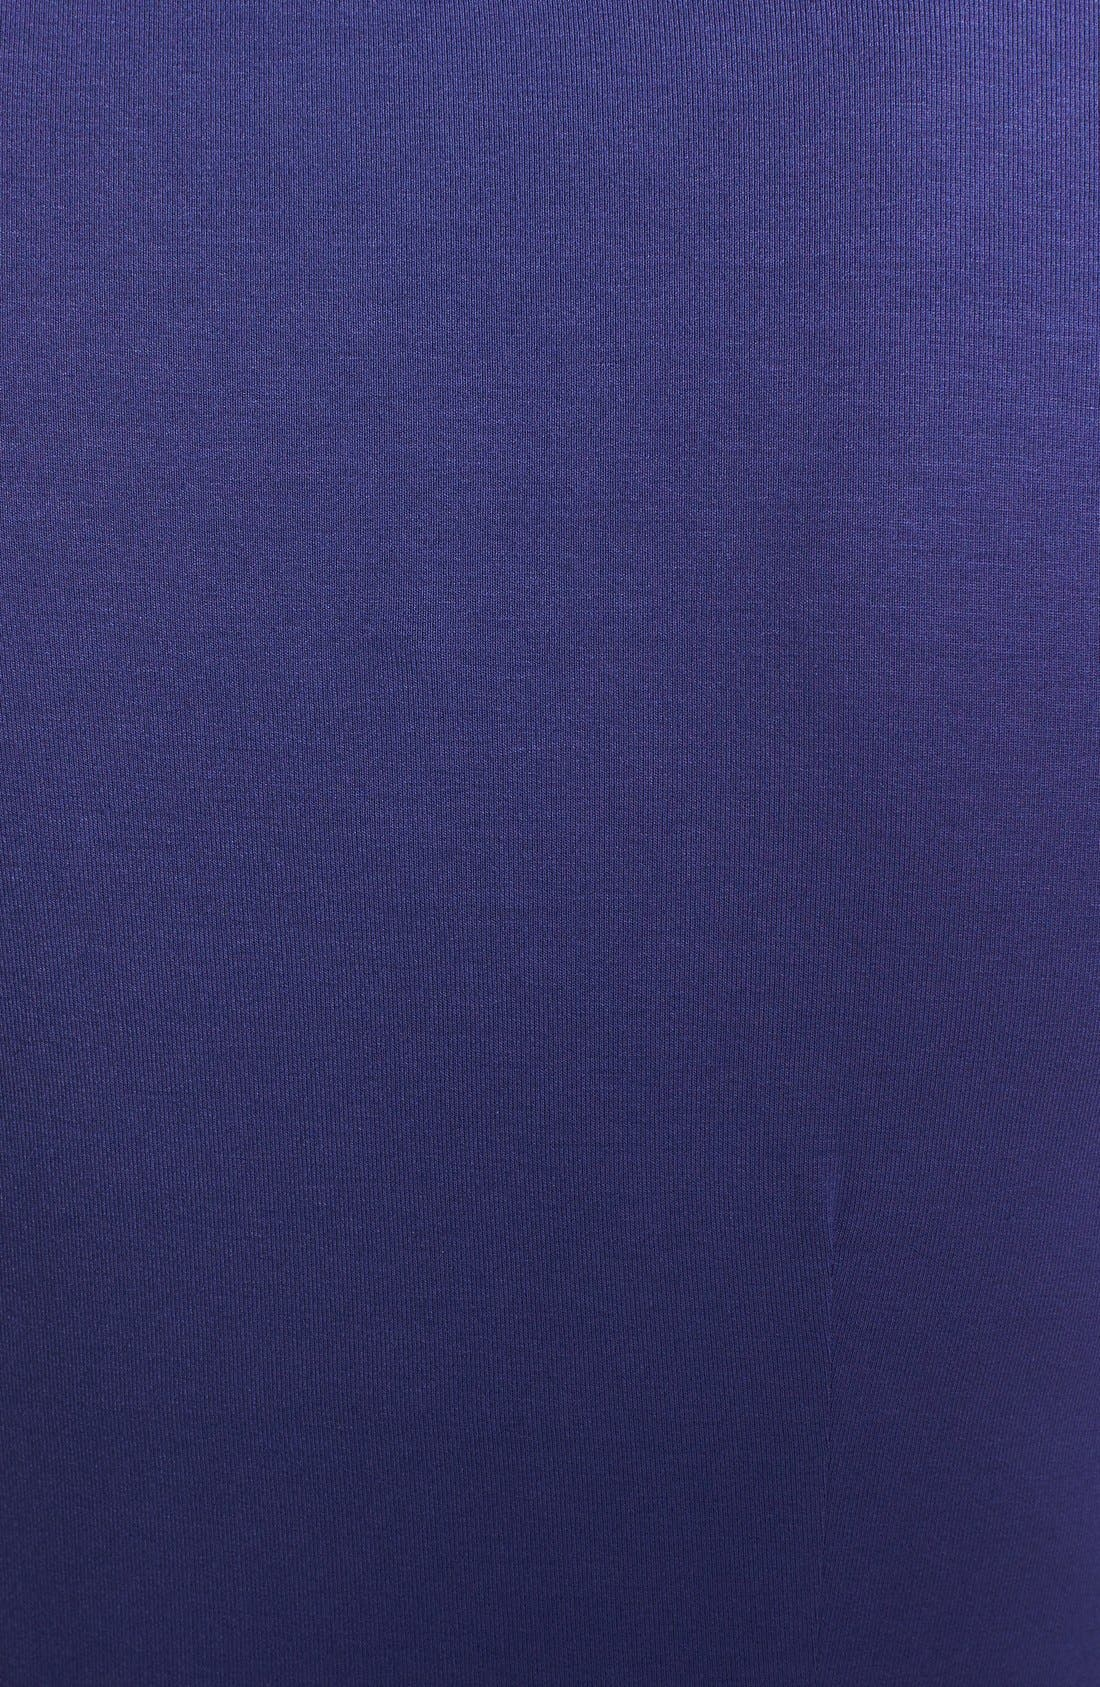 'Tambour' Side Gathered Dress,                             Alternate thumbnail 14, color,